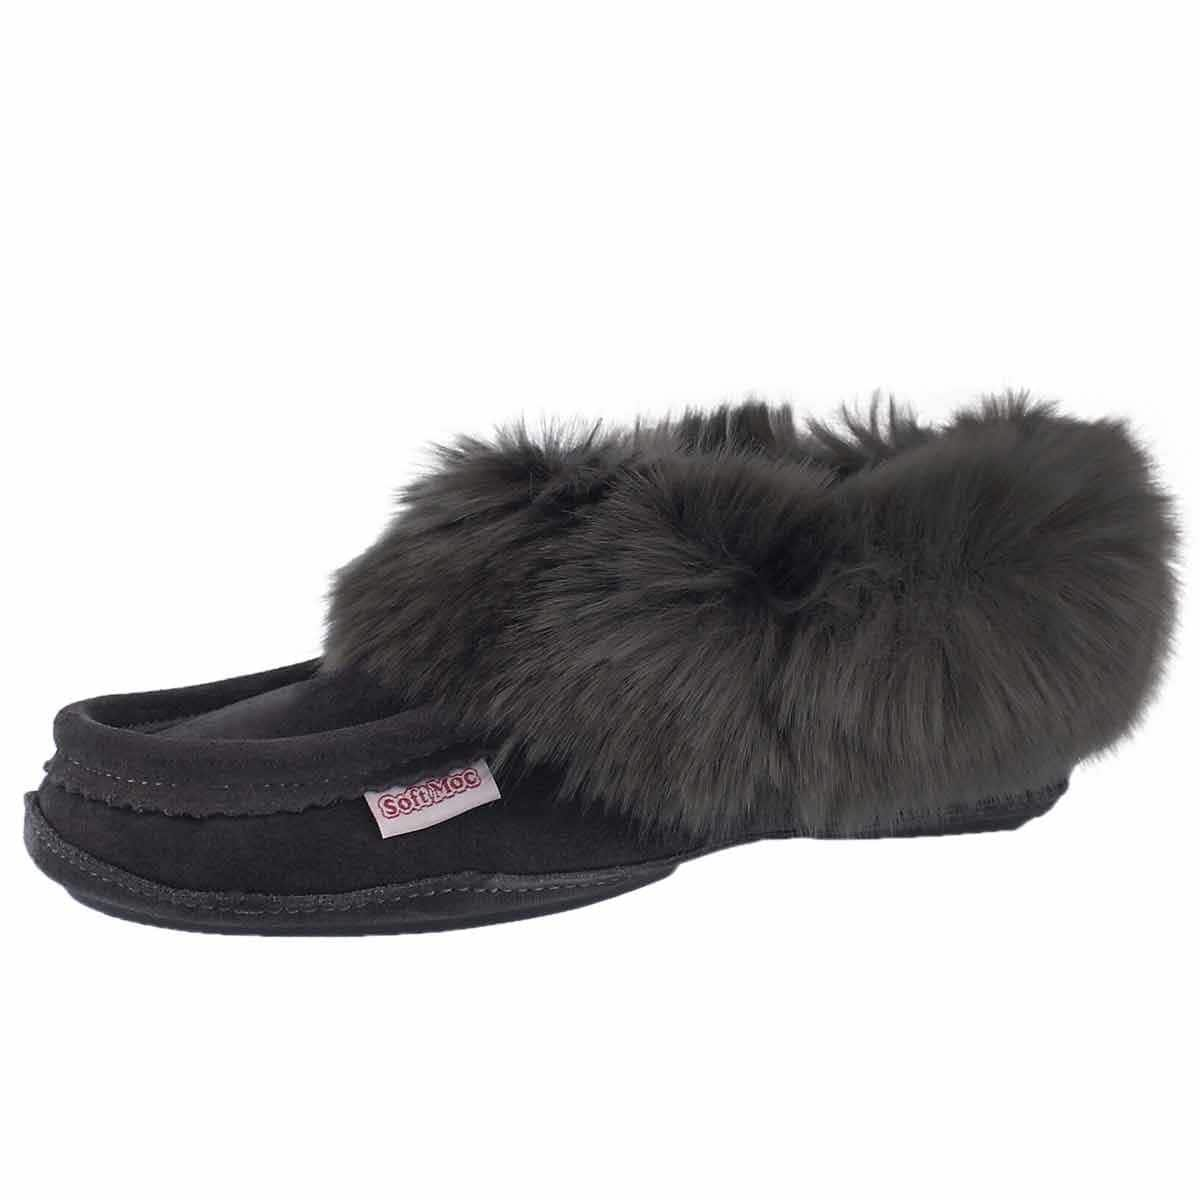 SoftMoc Women's Too Cute Lined Moccasin